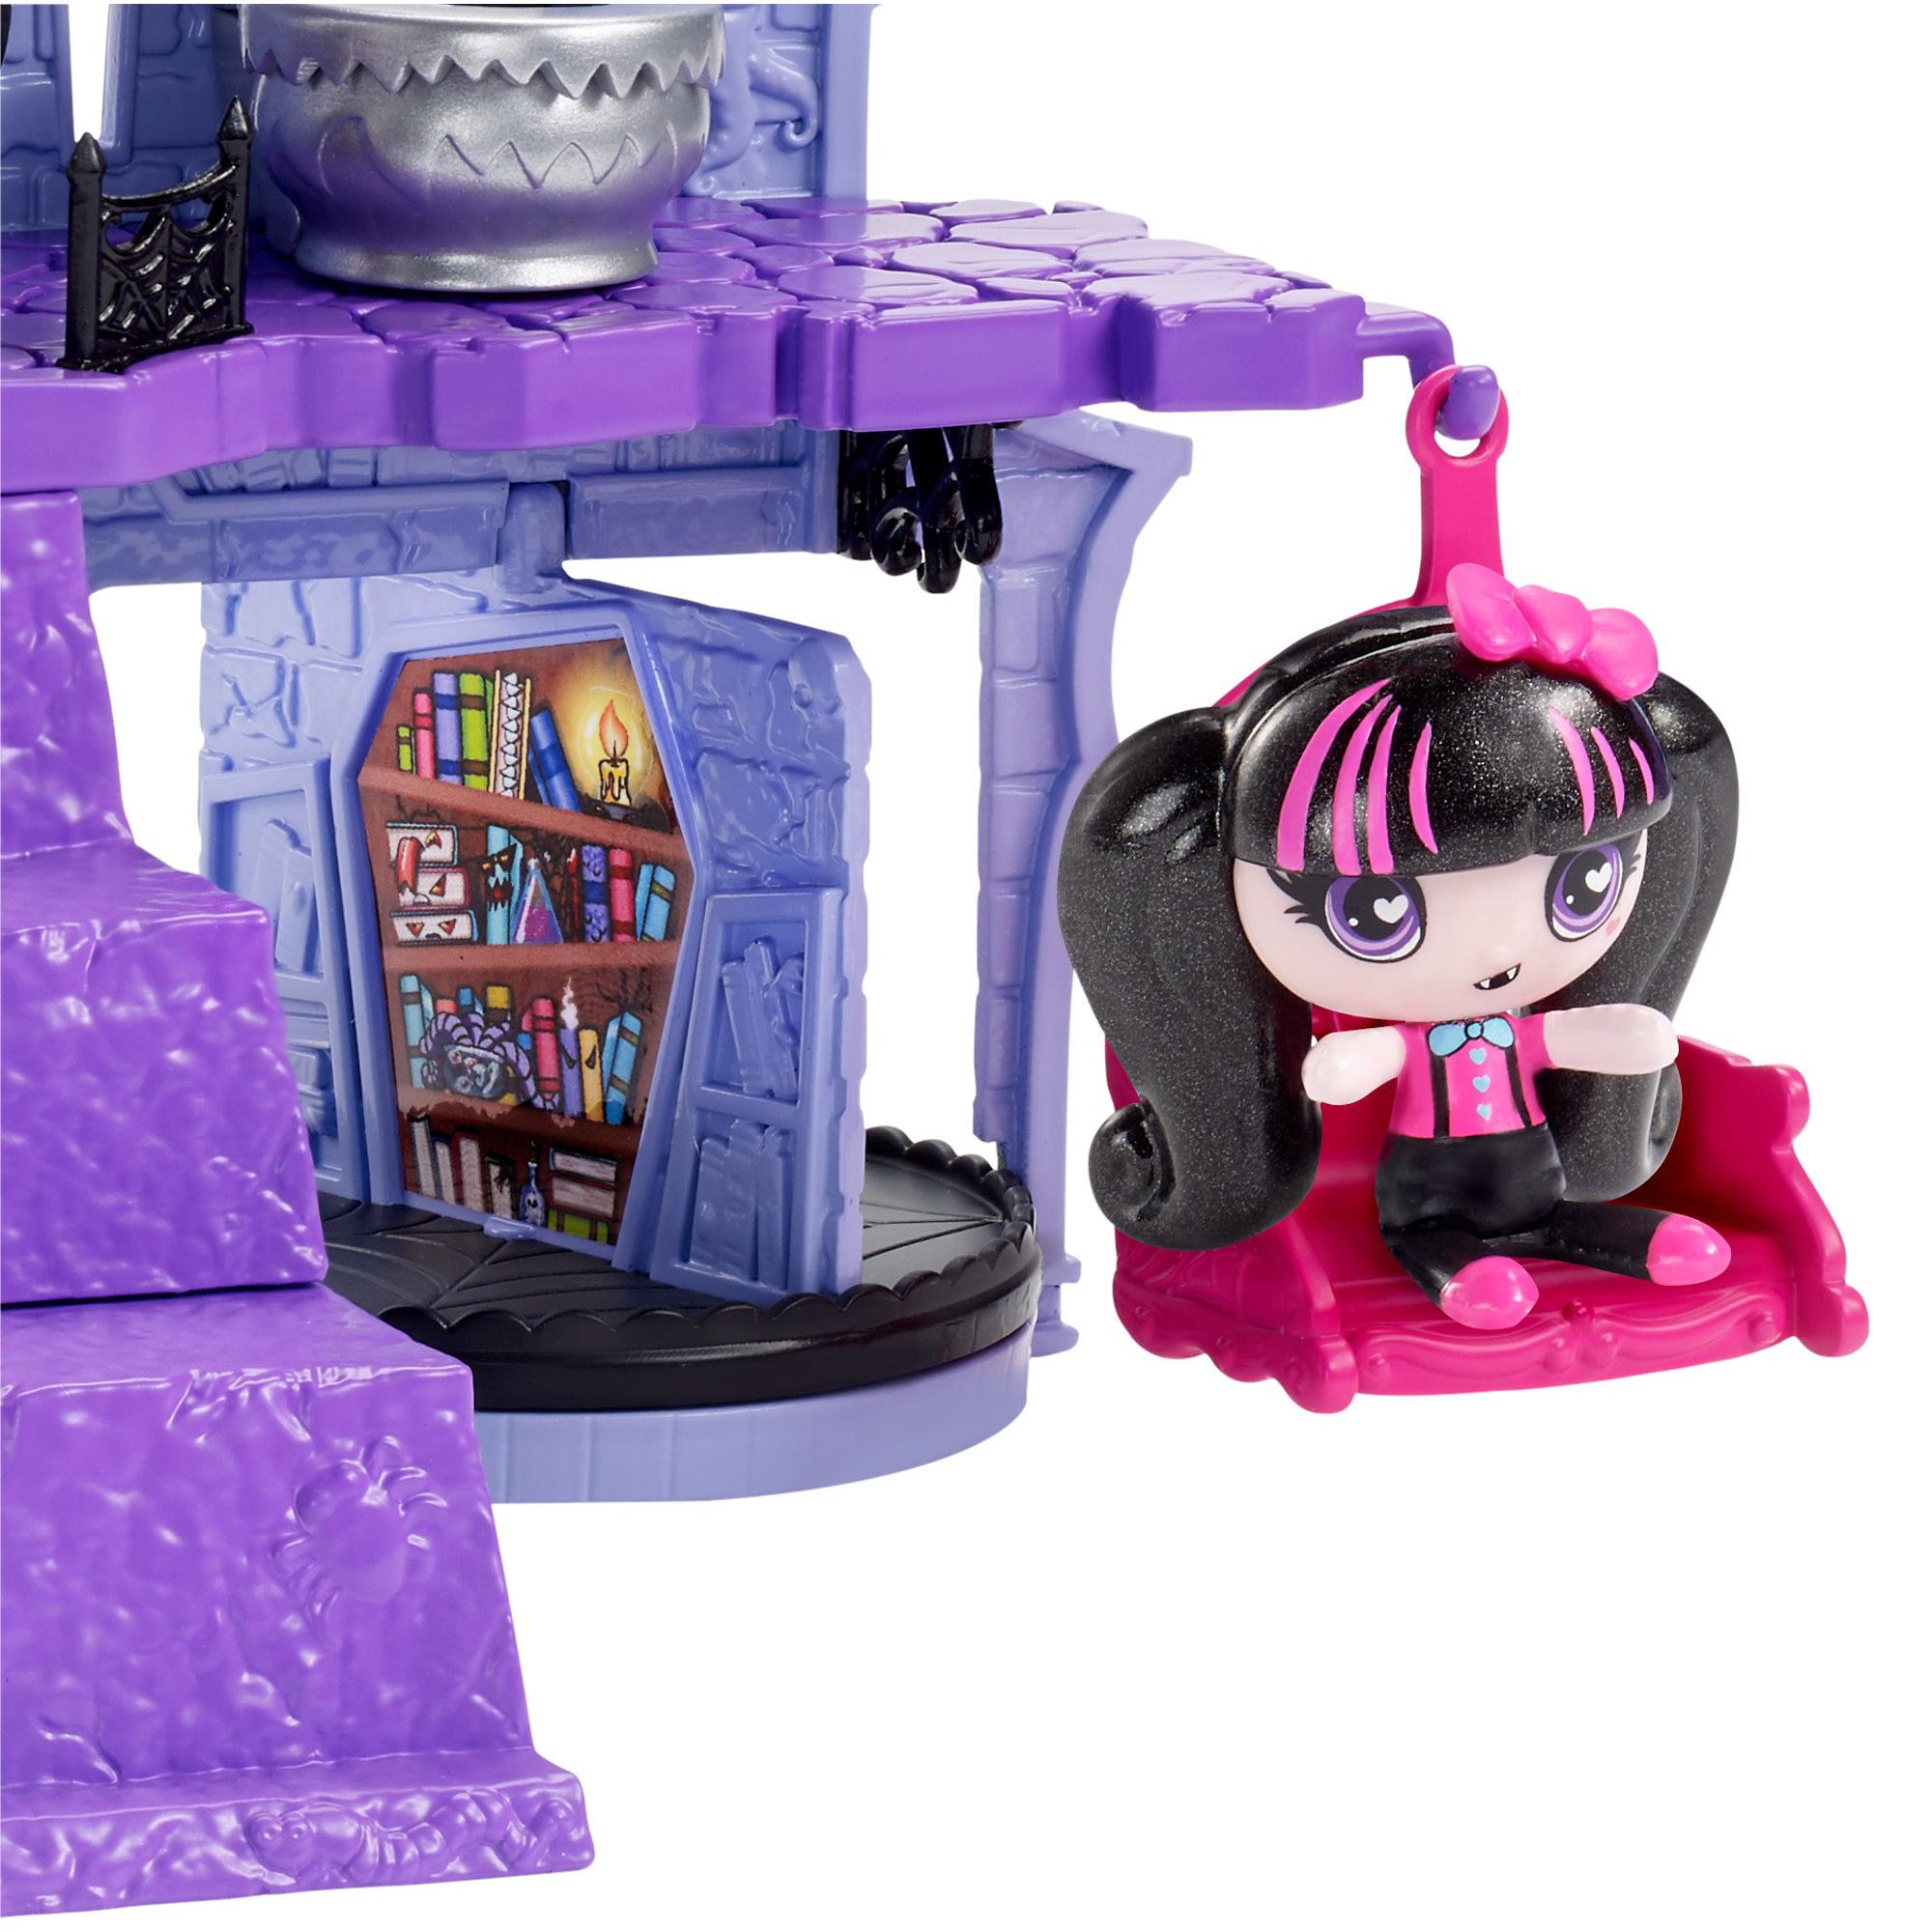 Monster High Minis Playset by Monster High